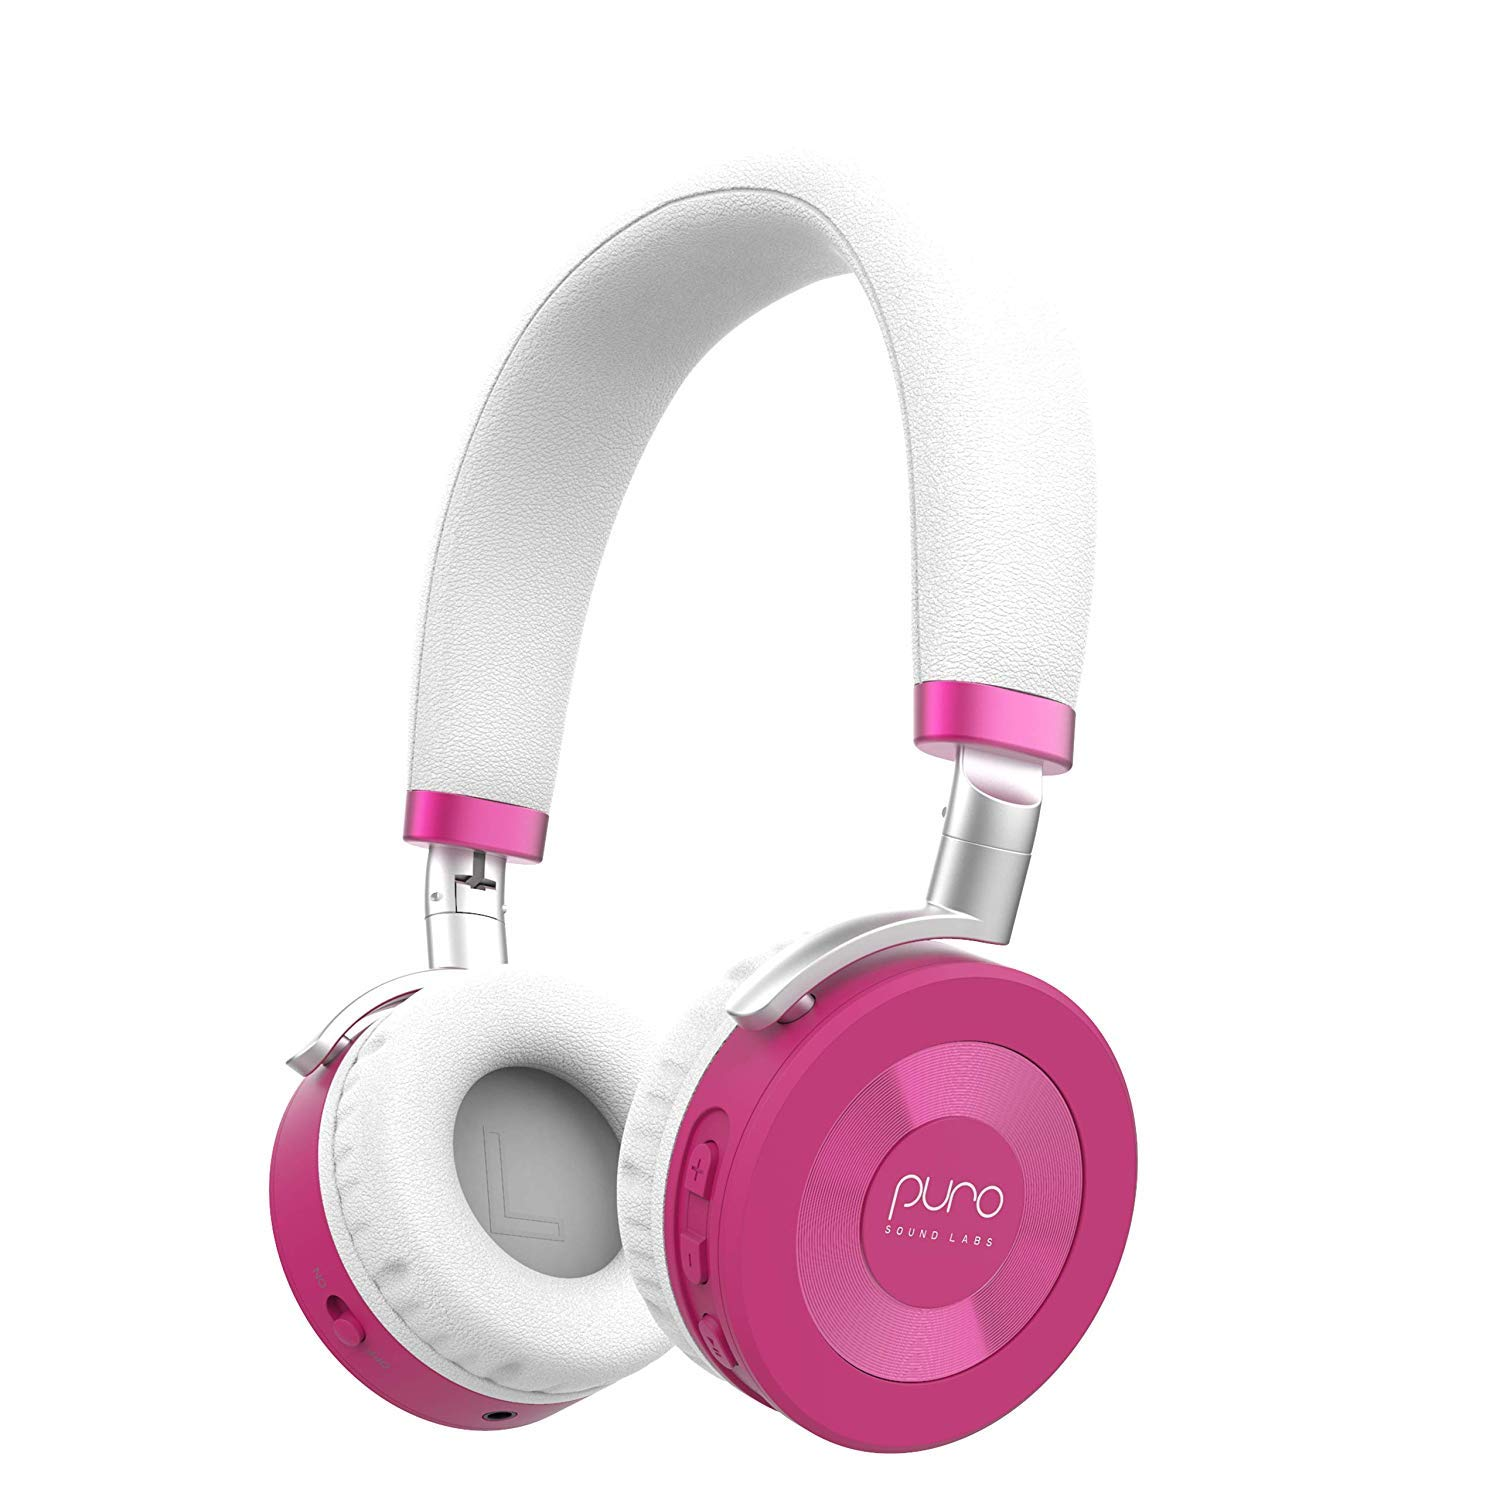 JuniorJams Volume Limiting Headphones for Kids 3 Protect Hearing Foldable Adjustable Bluetooth Wireless Headphones for Tablets, Smartphones, PCs 22-Hour Battery Life by Puro Sound Labs, Pink